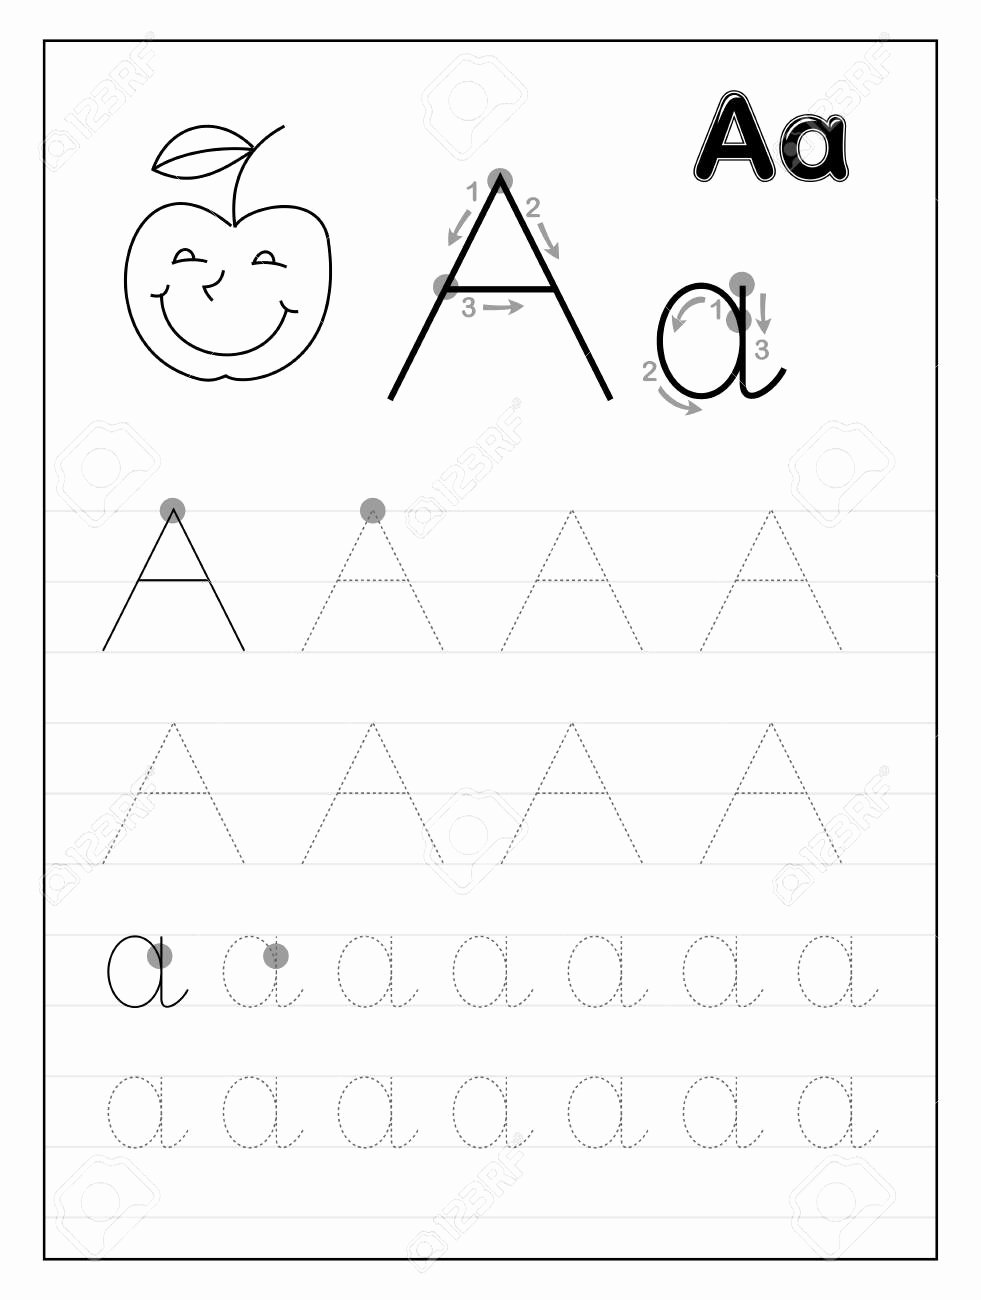 Tracing Letter Worksheets for Preschoolers Fresh Math Worksheet Printable Letter Tracing Image Ideas Trace